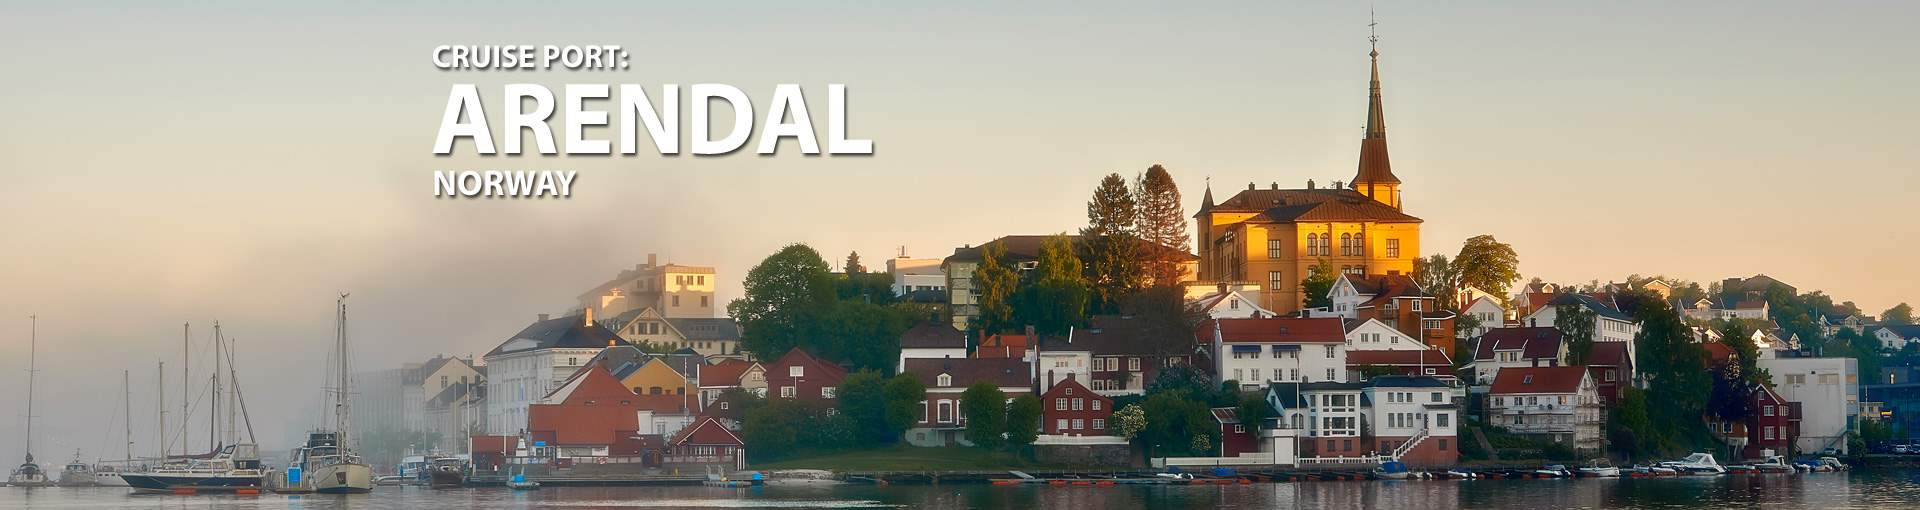 Cruises to Arendal, Norway